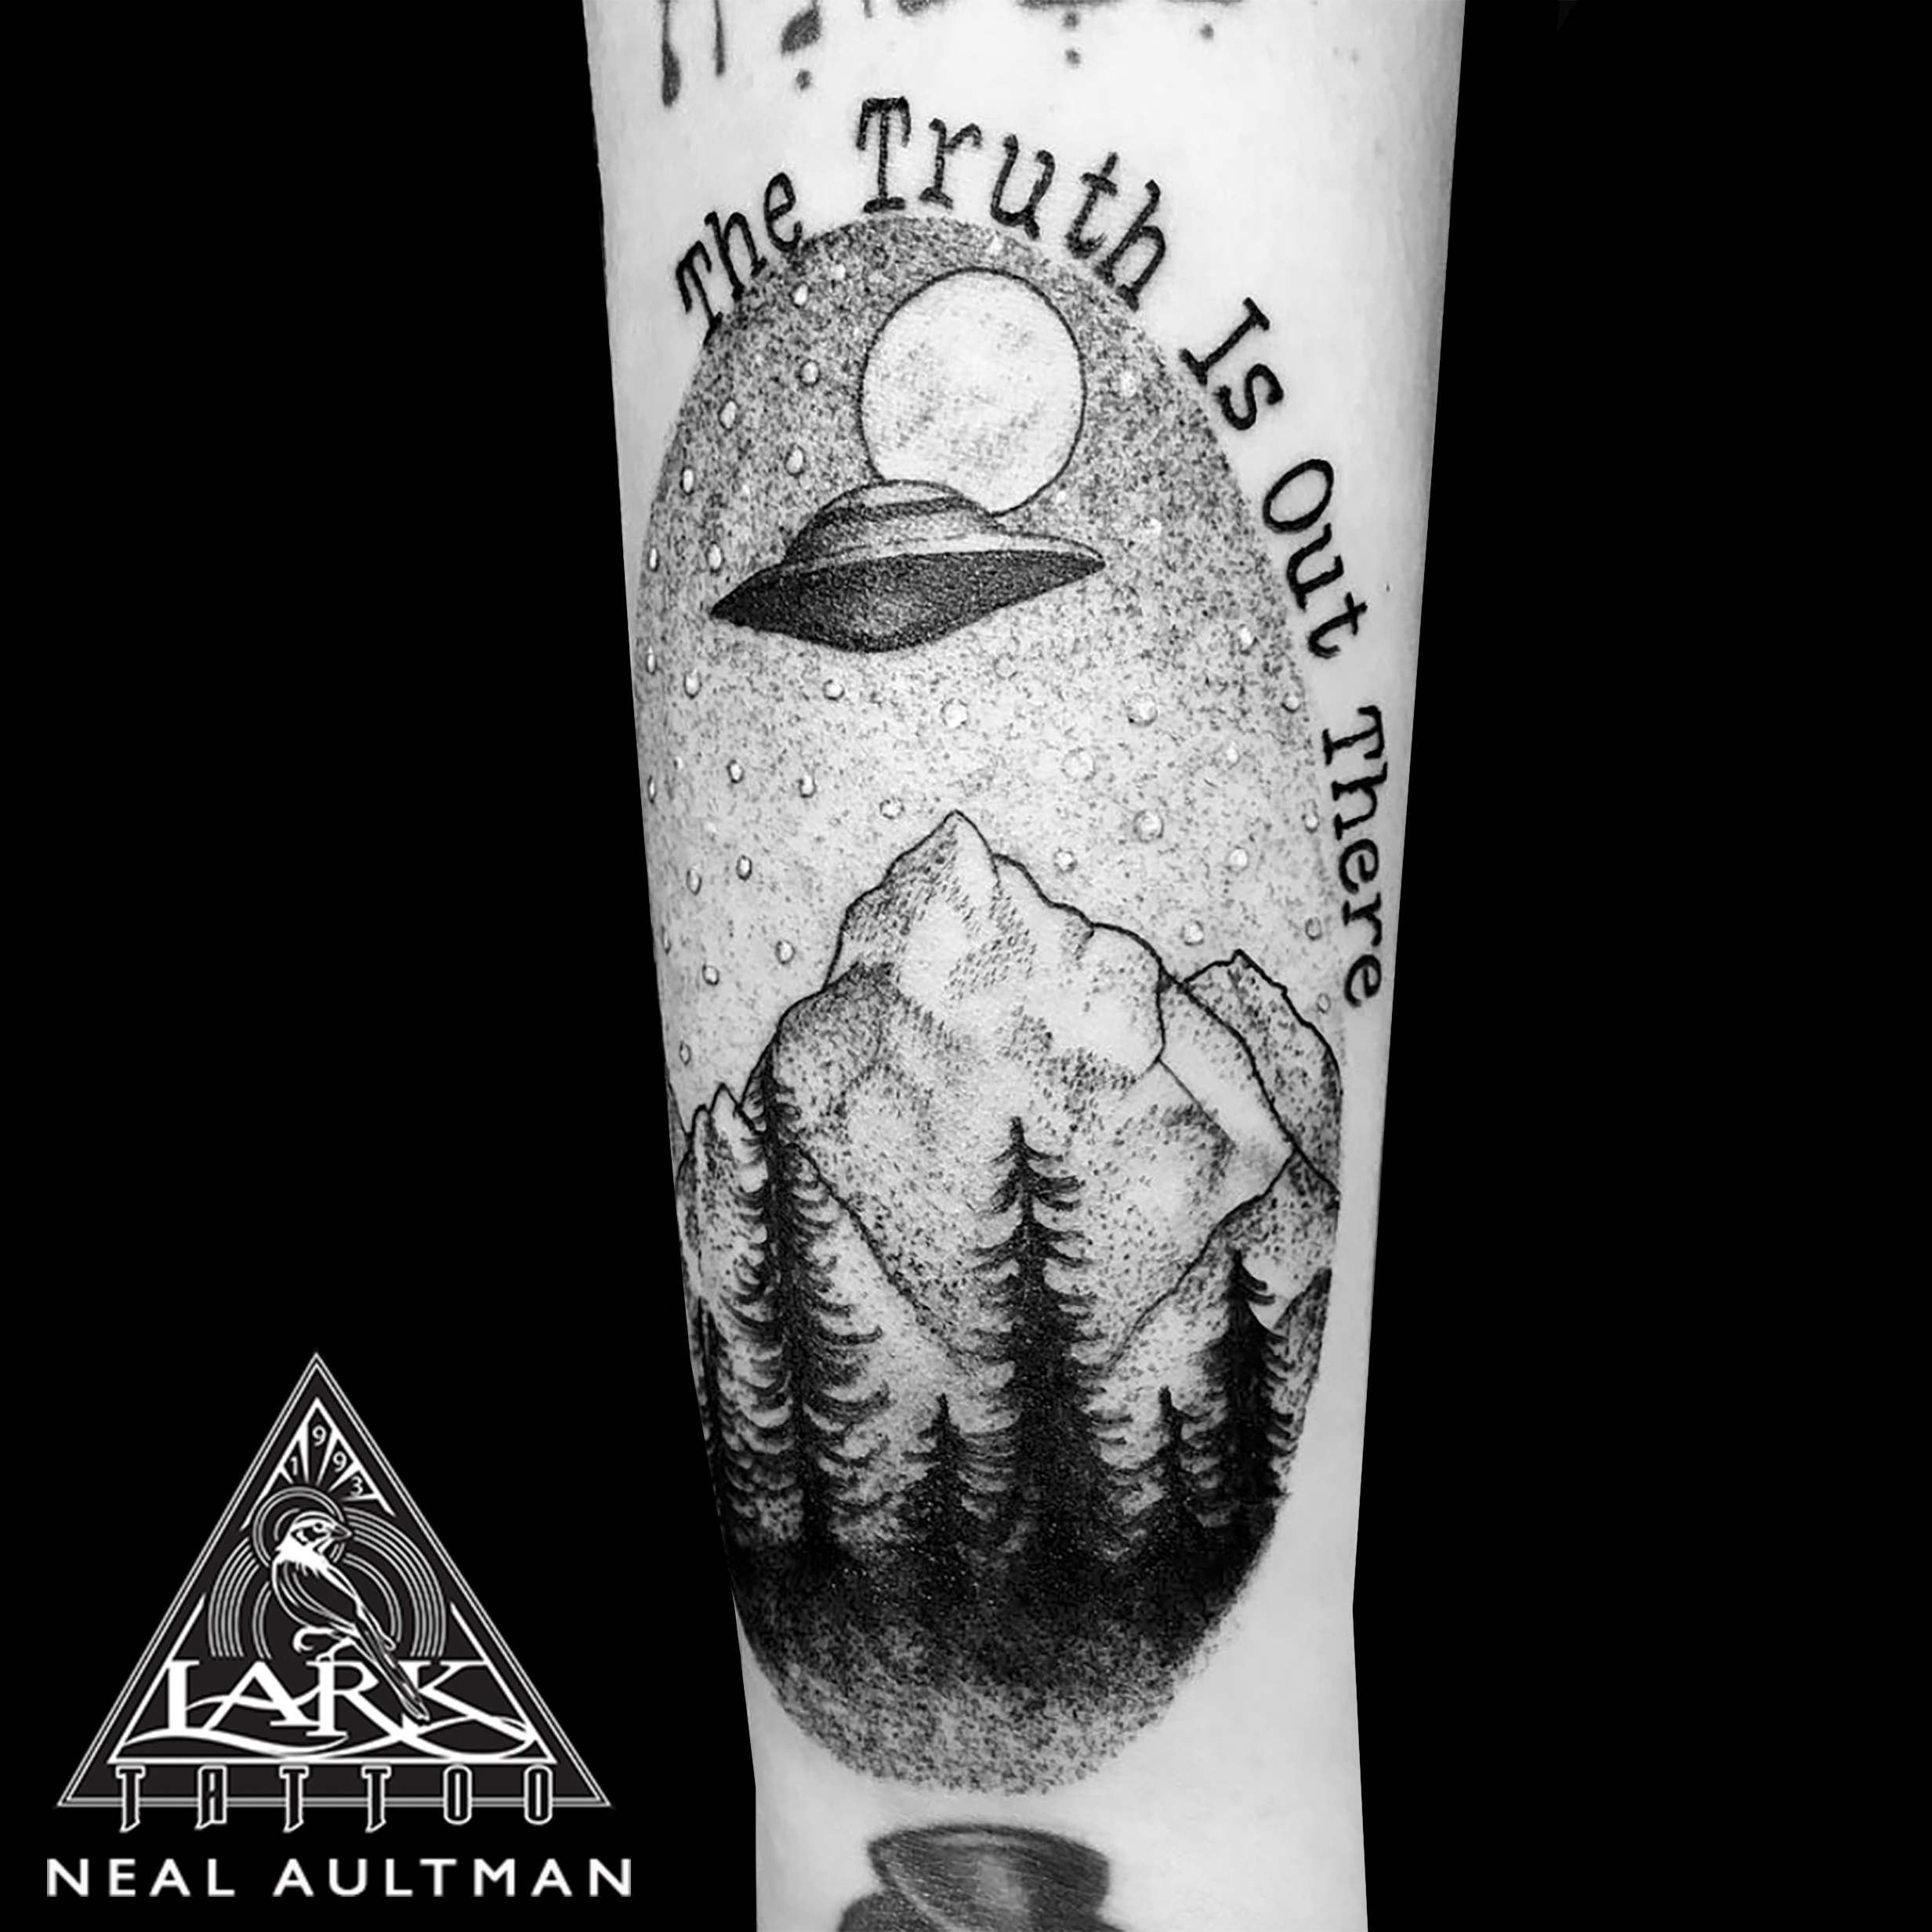 #xfiles #xfilestattoo #ufo #ufotattoo #ufomountainscene #ufomountainscenetattoo #mountains #mountainstattoo #thetruthisoutthere #thetruthisouttheretattoo #linesanddots #linesanddotstattoo #blackandgreytattoo #blackandgreytattoo #tattoo #tattoos #tat #tats #tatts #tatted #tattedup #tattoist #tattooed #inked #inkedup #ink #tattoooftheday #amazingink #bodyart #tattooig #tattoosofinstagram #instatats #larktattoo #larktattoos #larktattoowestbury #westbury #longisland #NY #NewYork #usa #art #neal #nealaultman #nealaultmantattoo #nealaultmanlarktattoo